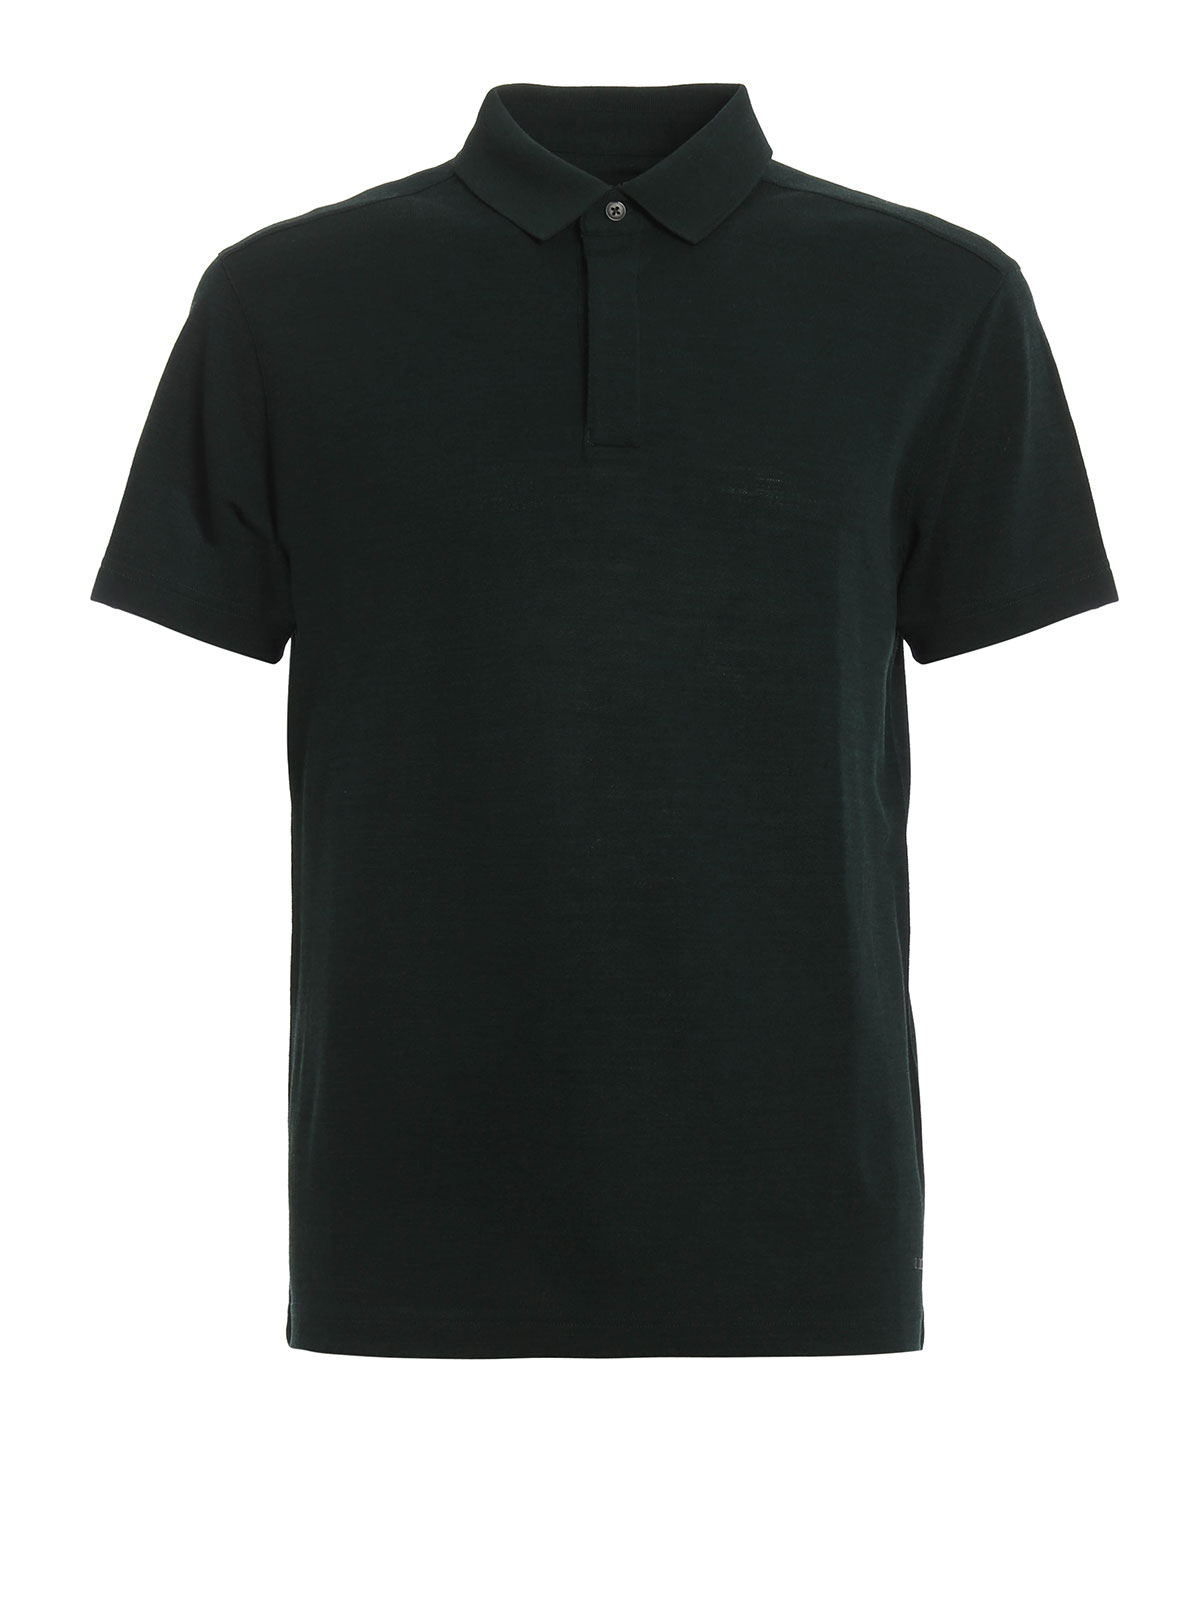 Wool polo shirt by z zegna t shirts ikrix for Zegna polo shirts sale